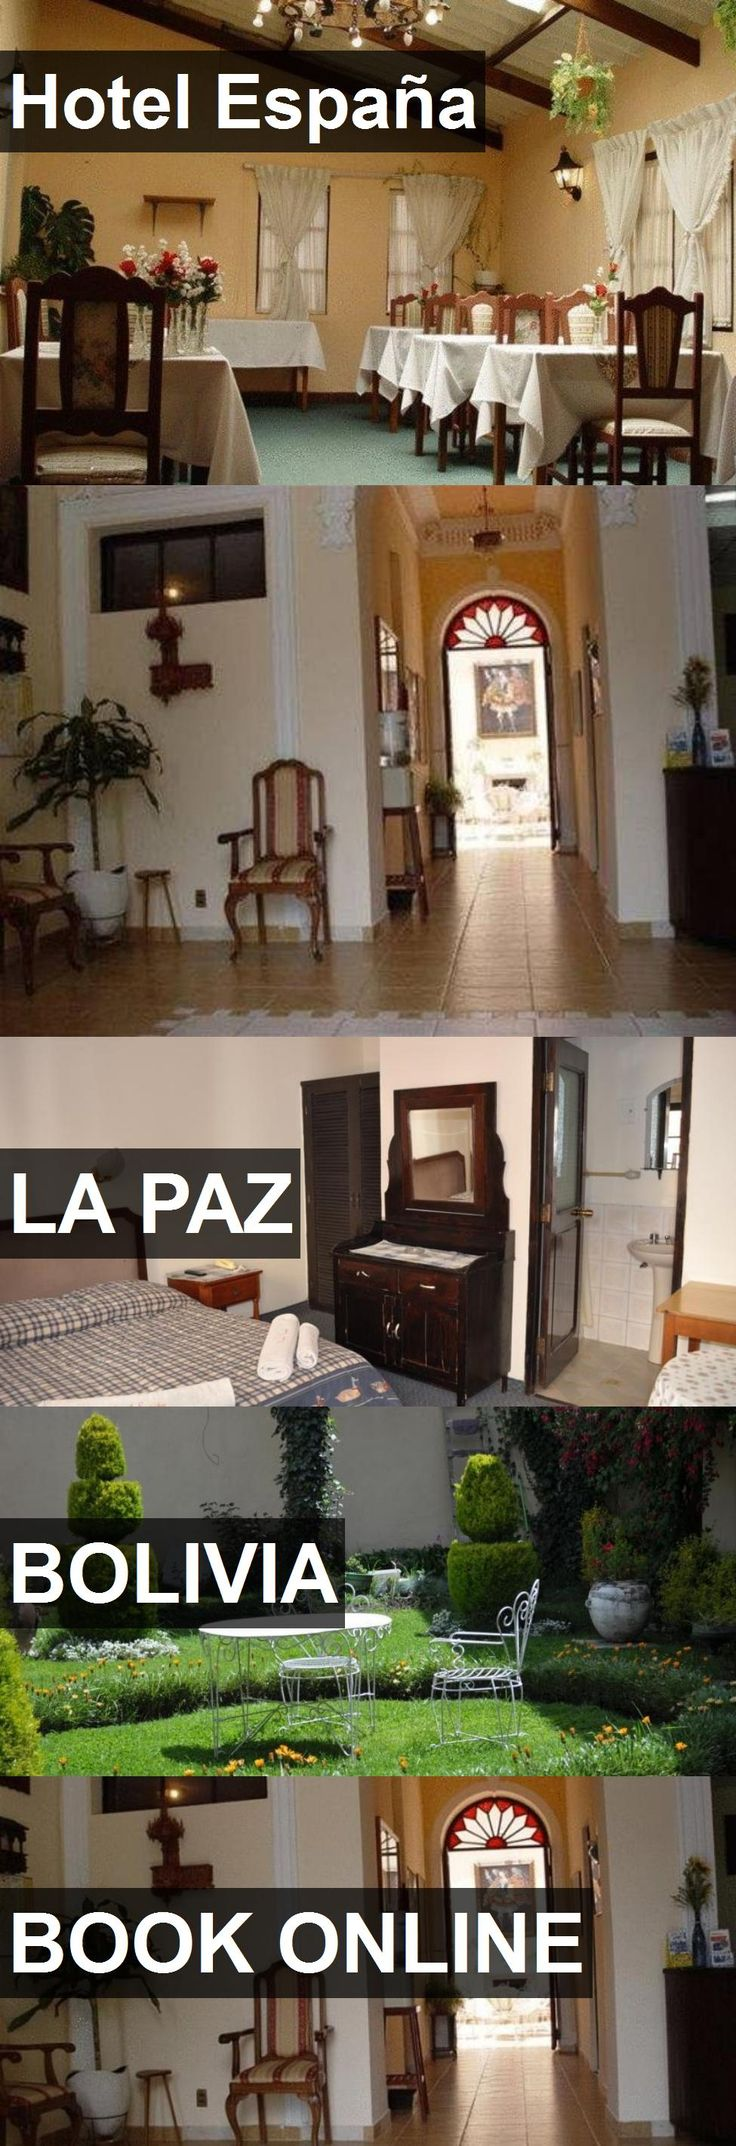 Hotel España in La Paz, Bolivia. For more information, photos, reviews and best prices please follow the link. #Bolivia #LaPaz #travel #vacation #hotel